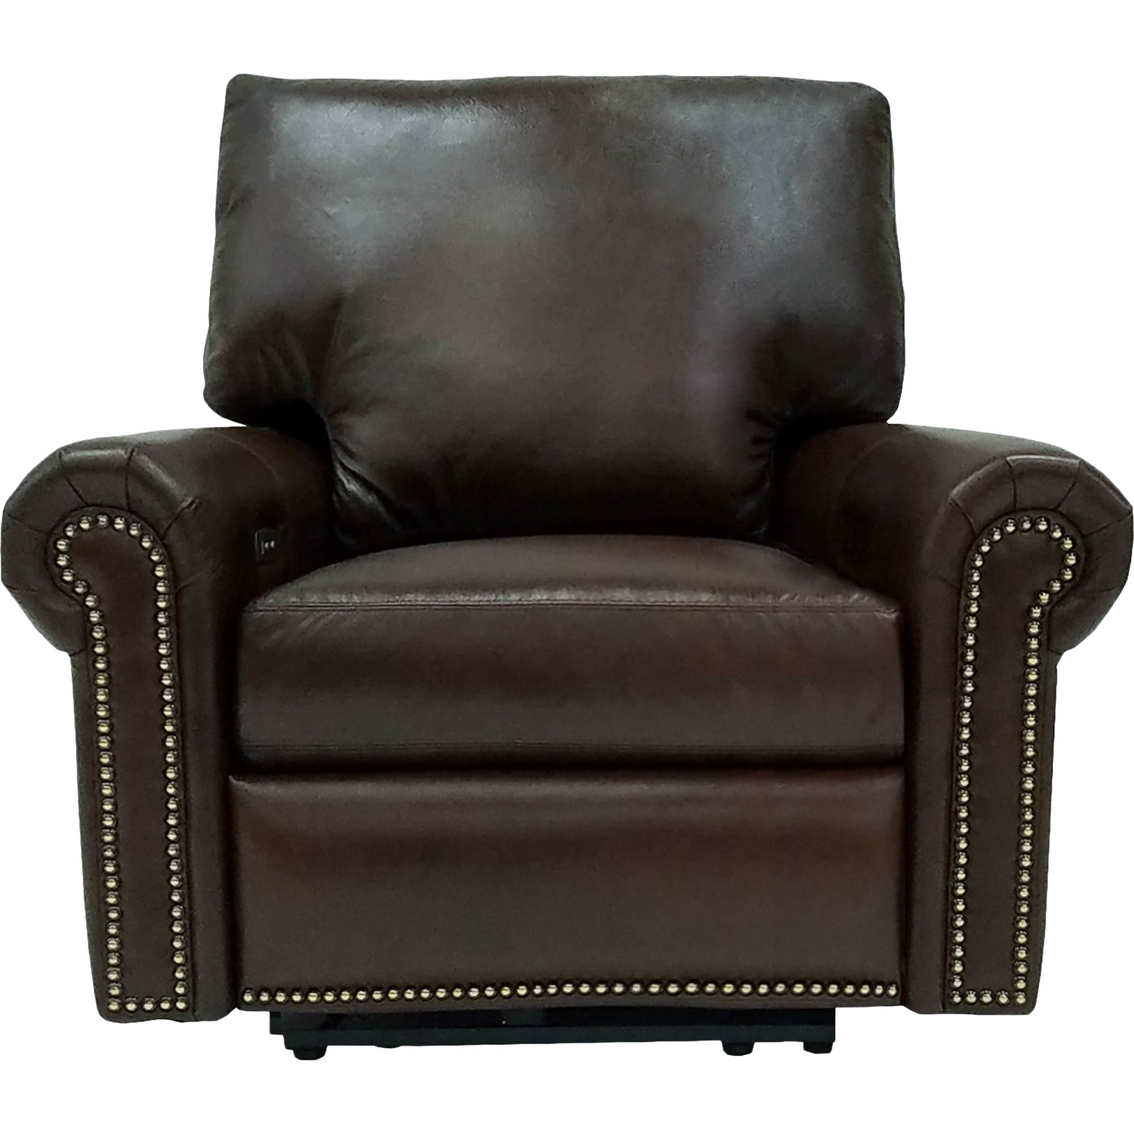 Beau Omnia Leather Fairfield Recliner